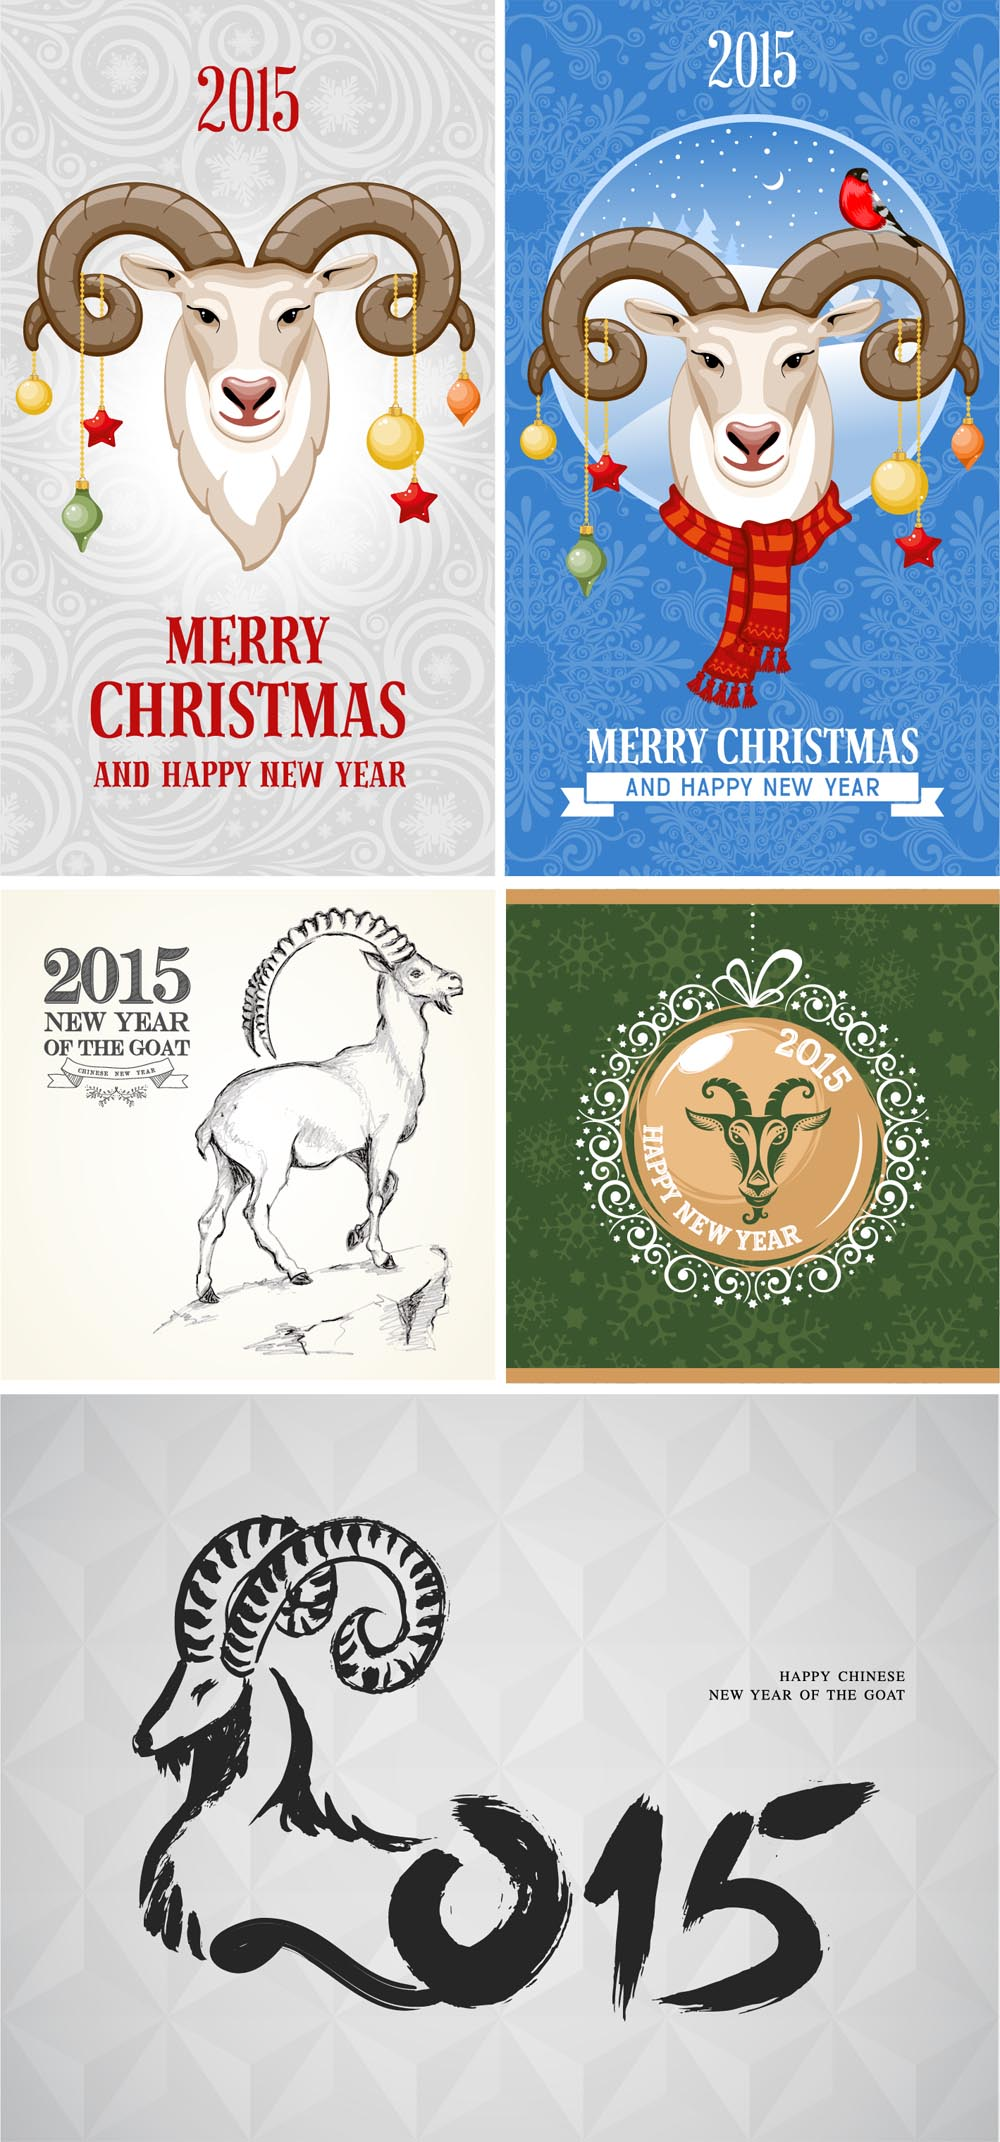 25 Free Vector Happy New Year Greetings Cards 2015 Collection A